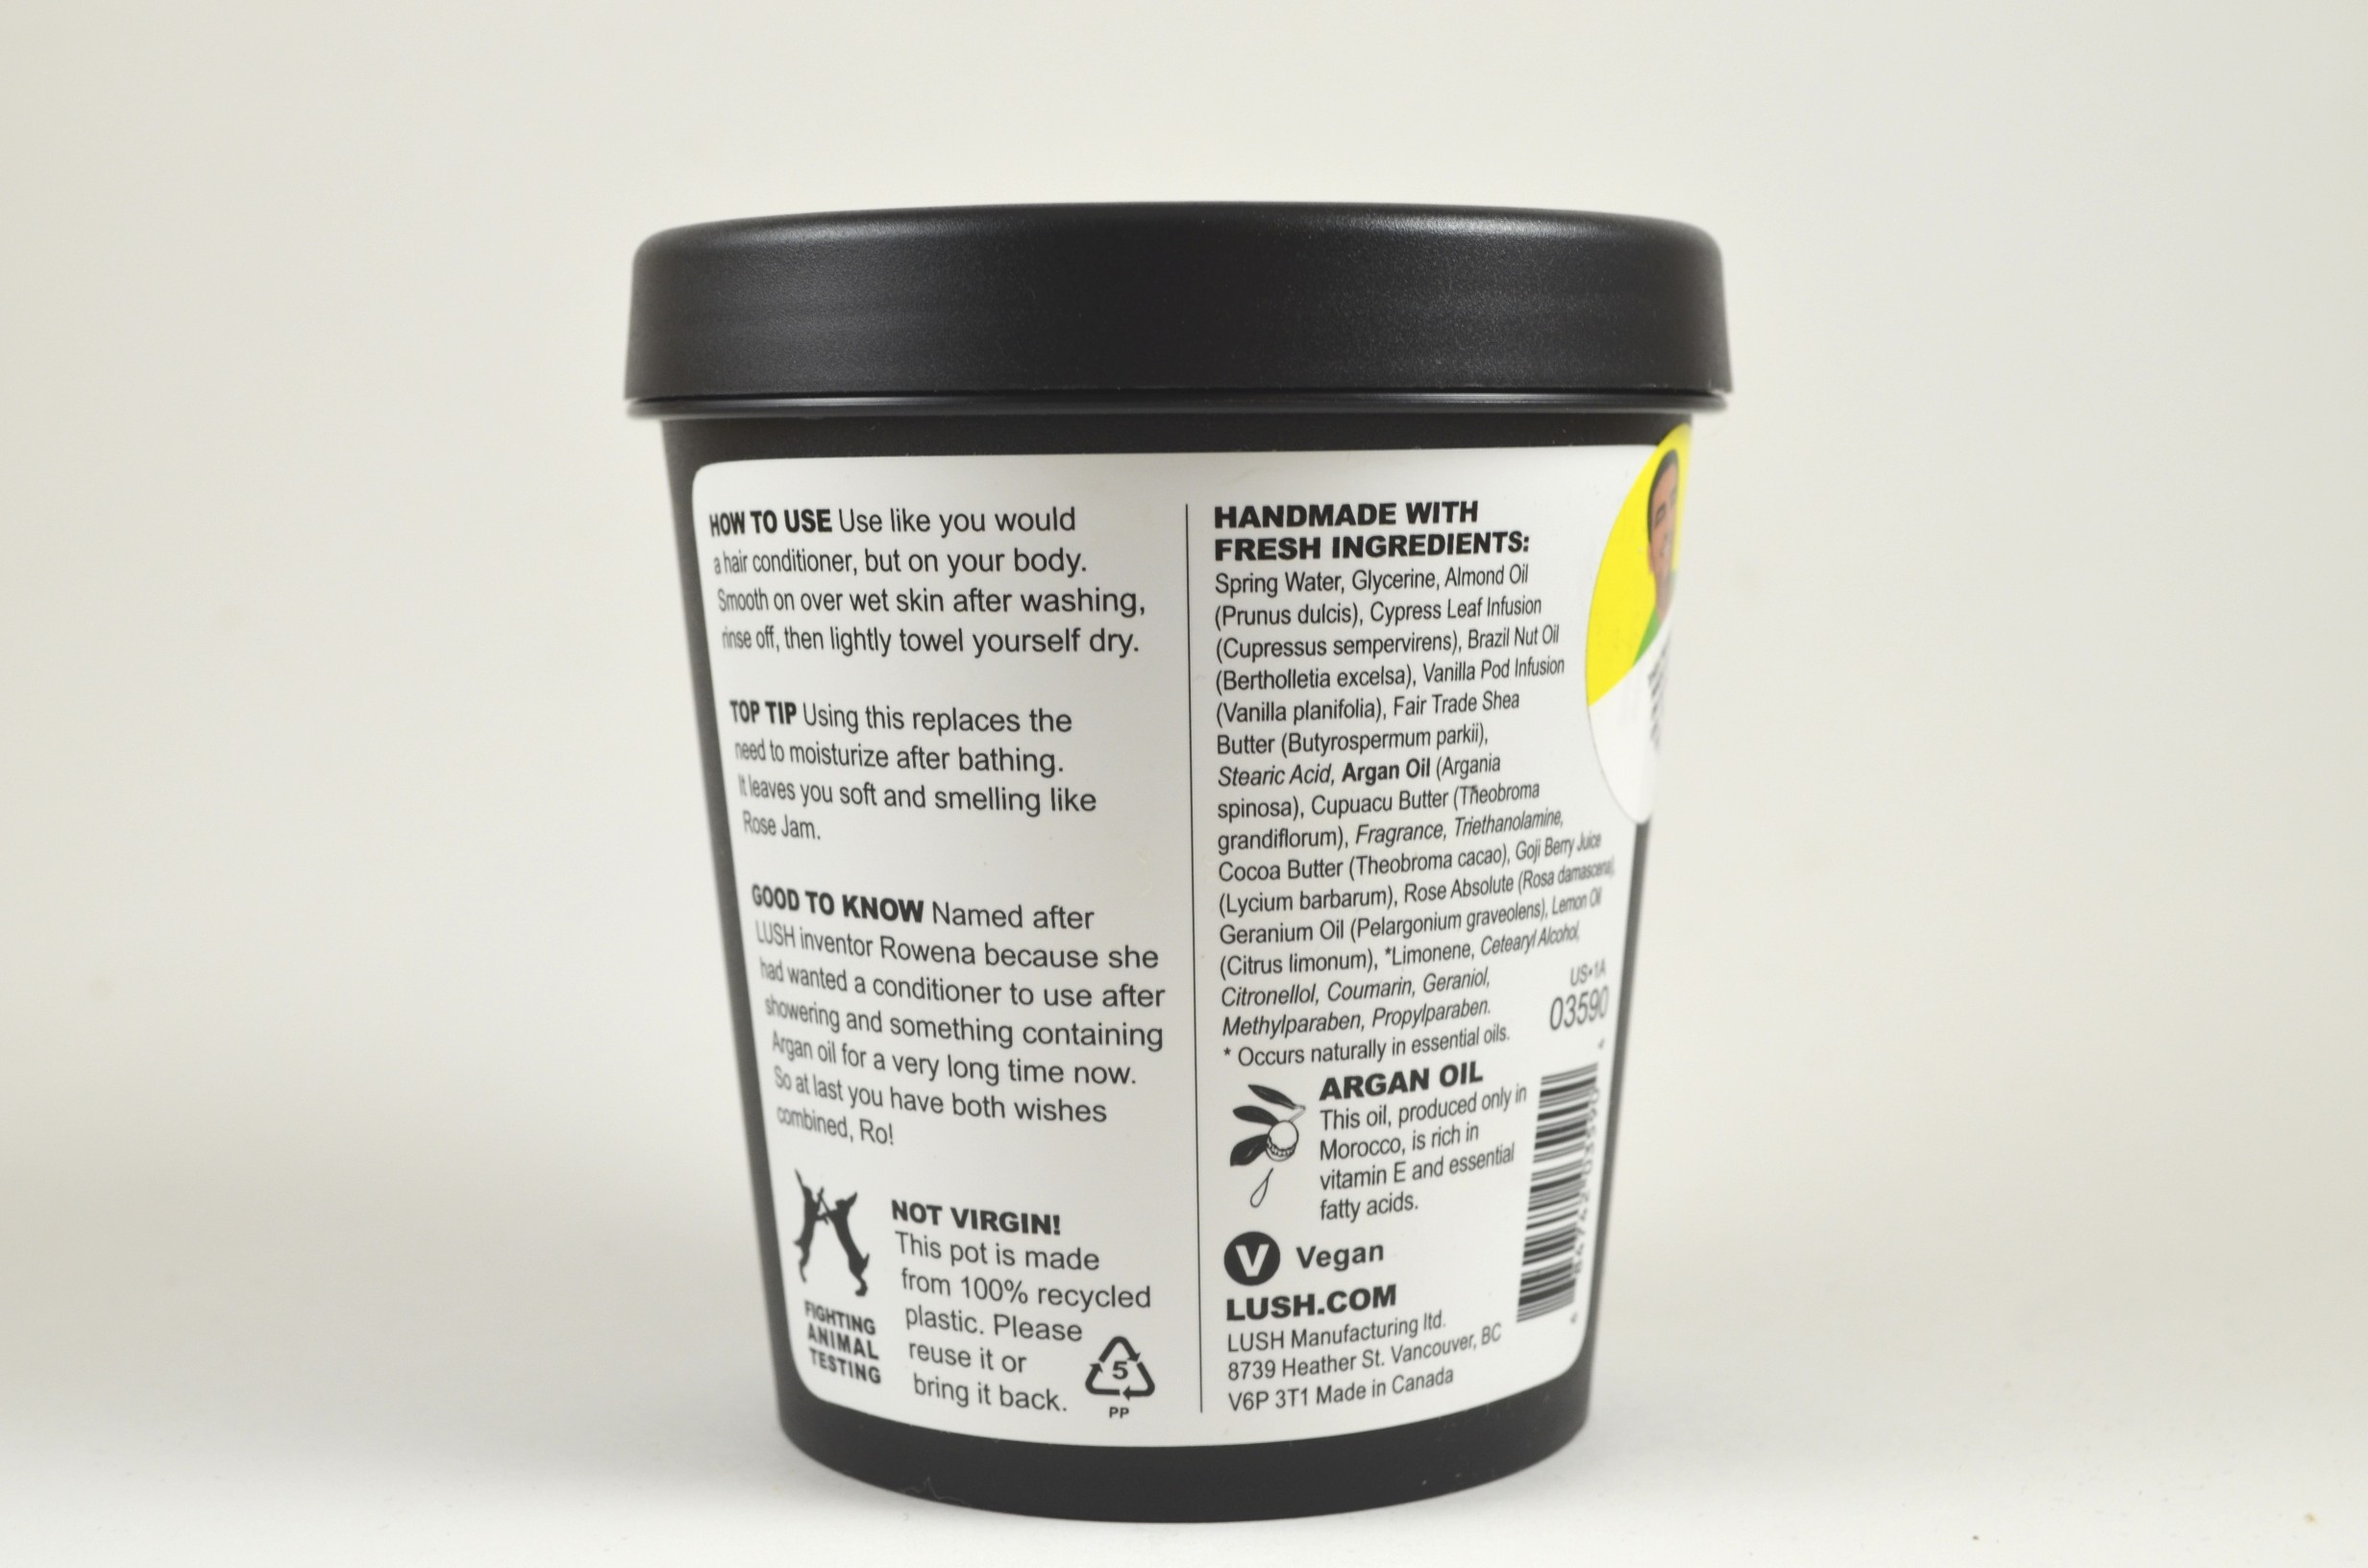 lush ro's argan body conditioner ingredients, instructions